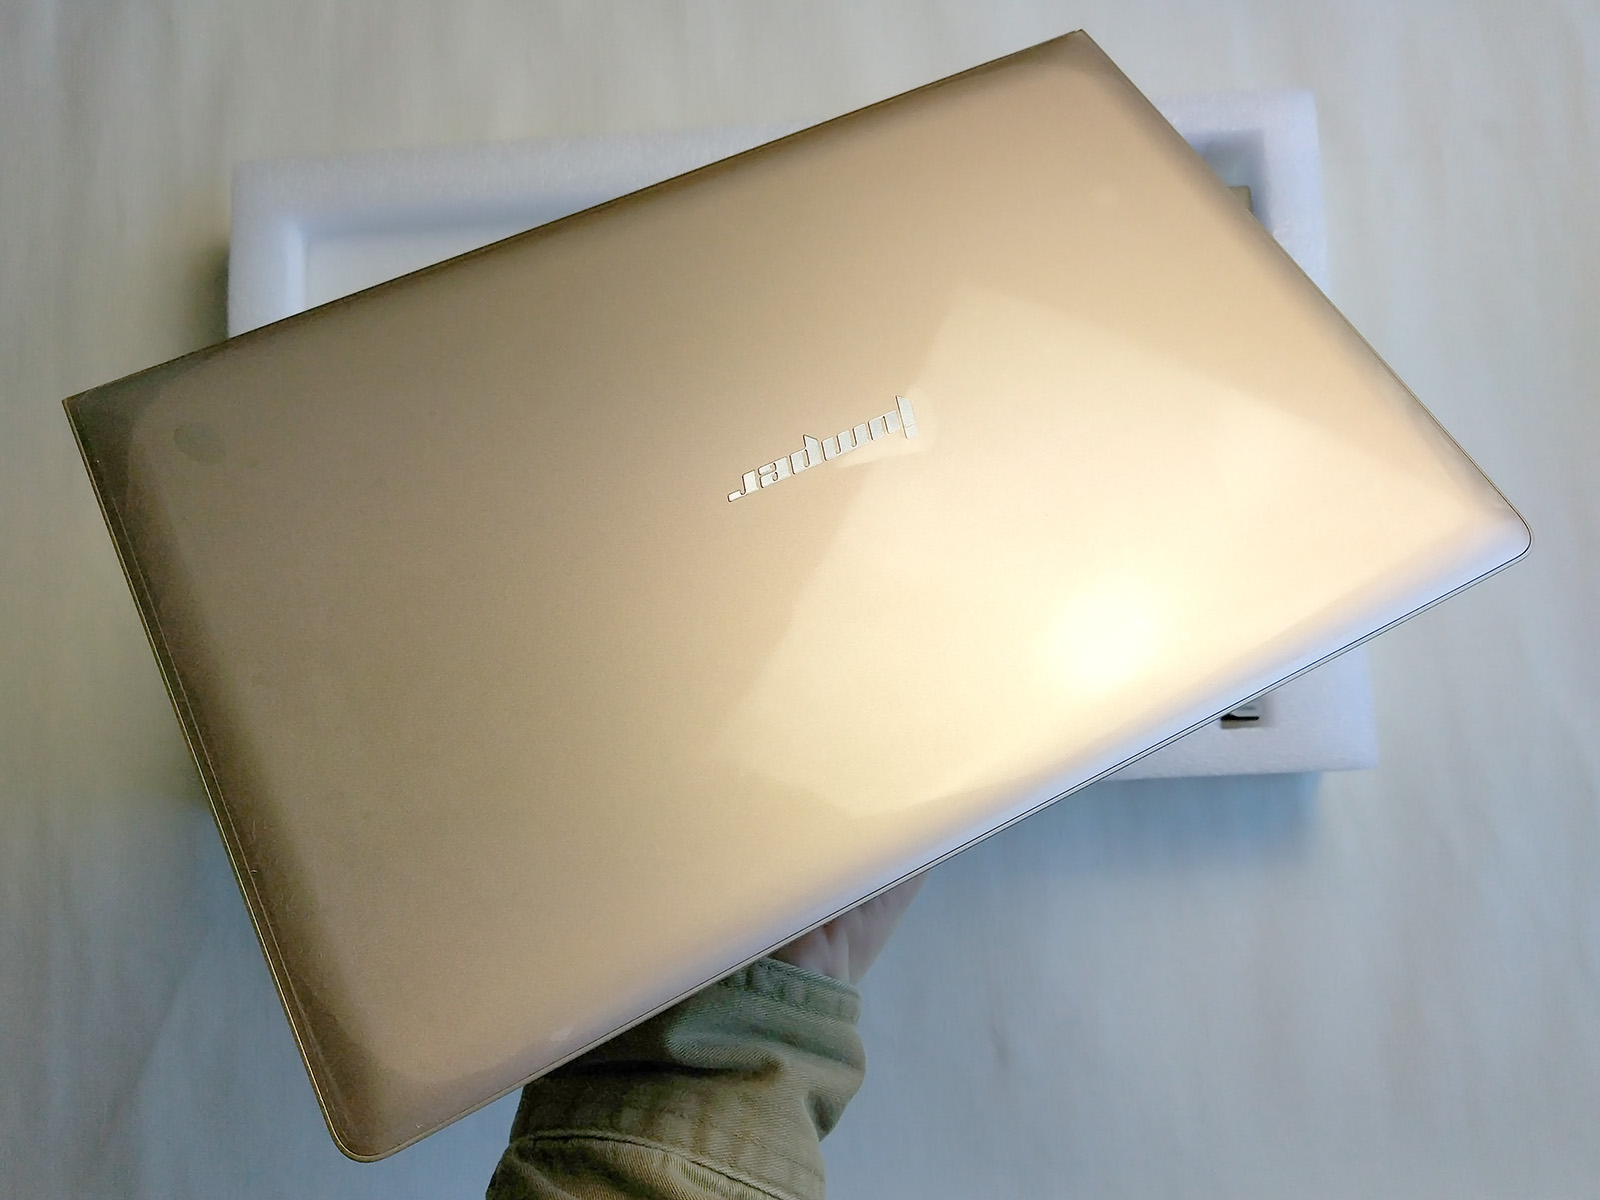 jumper-ezbook-air-first-look-unboxing-03